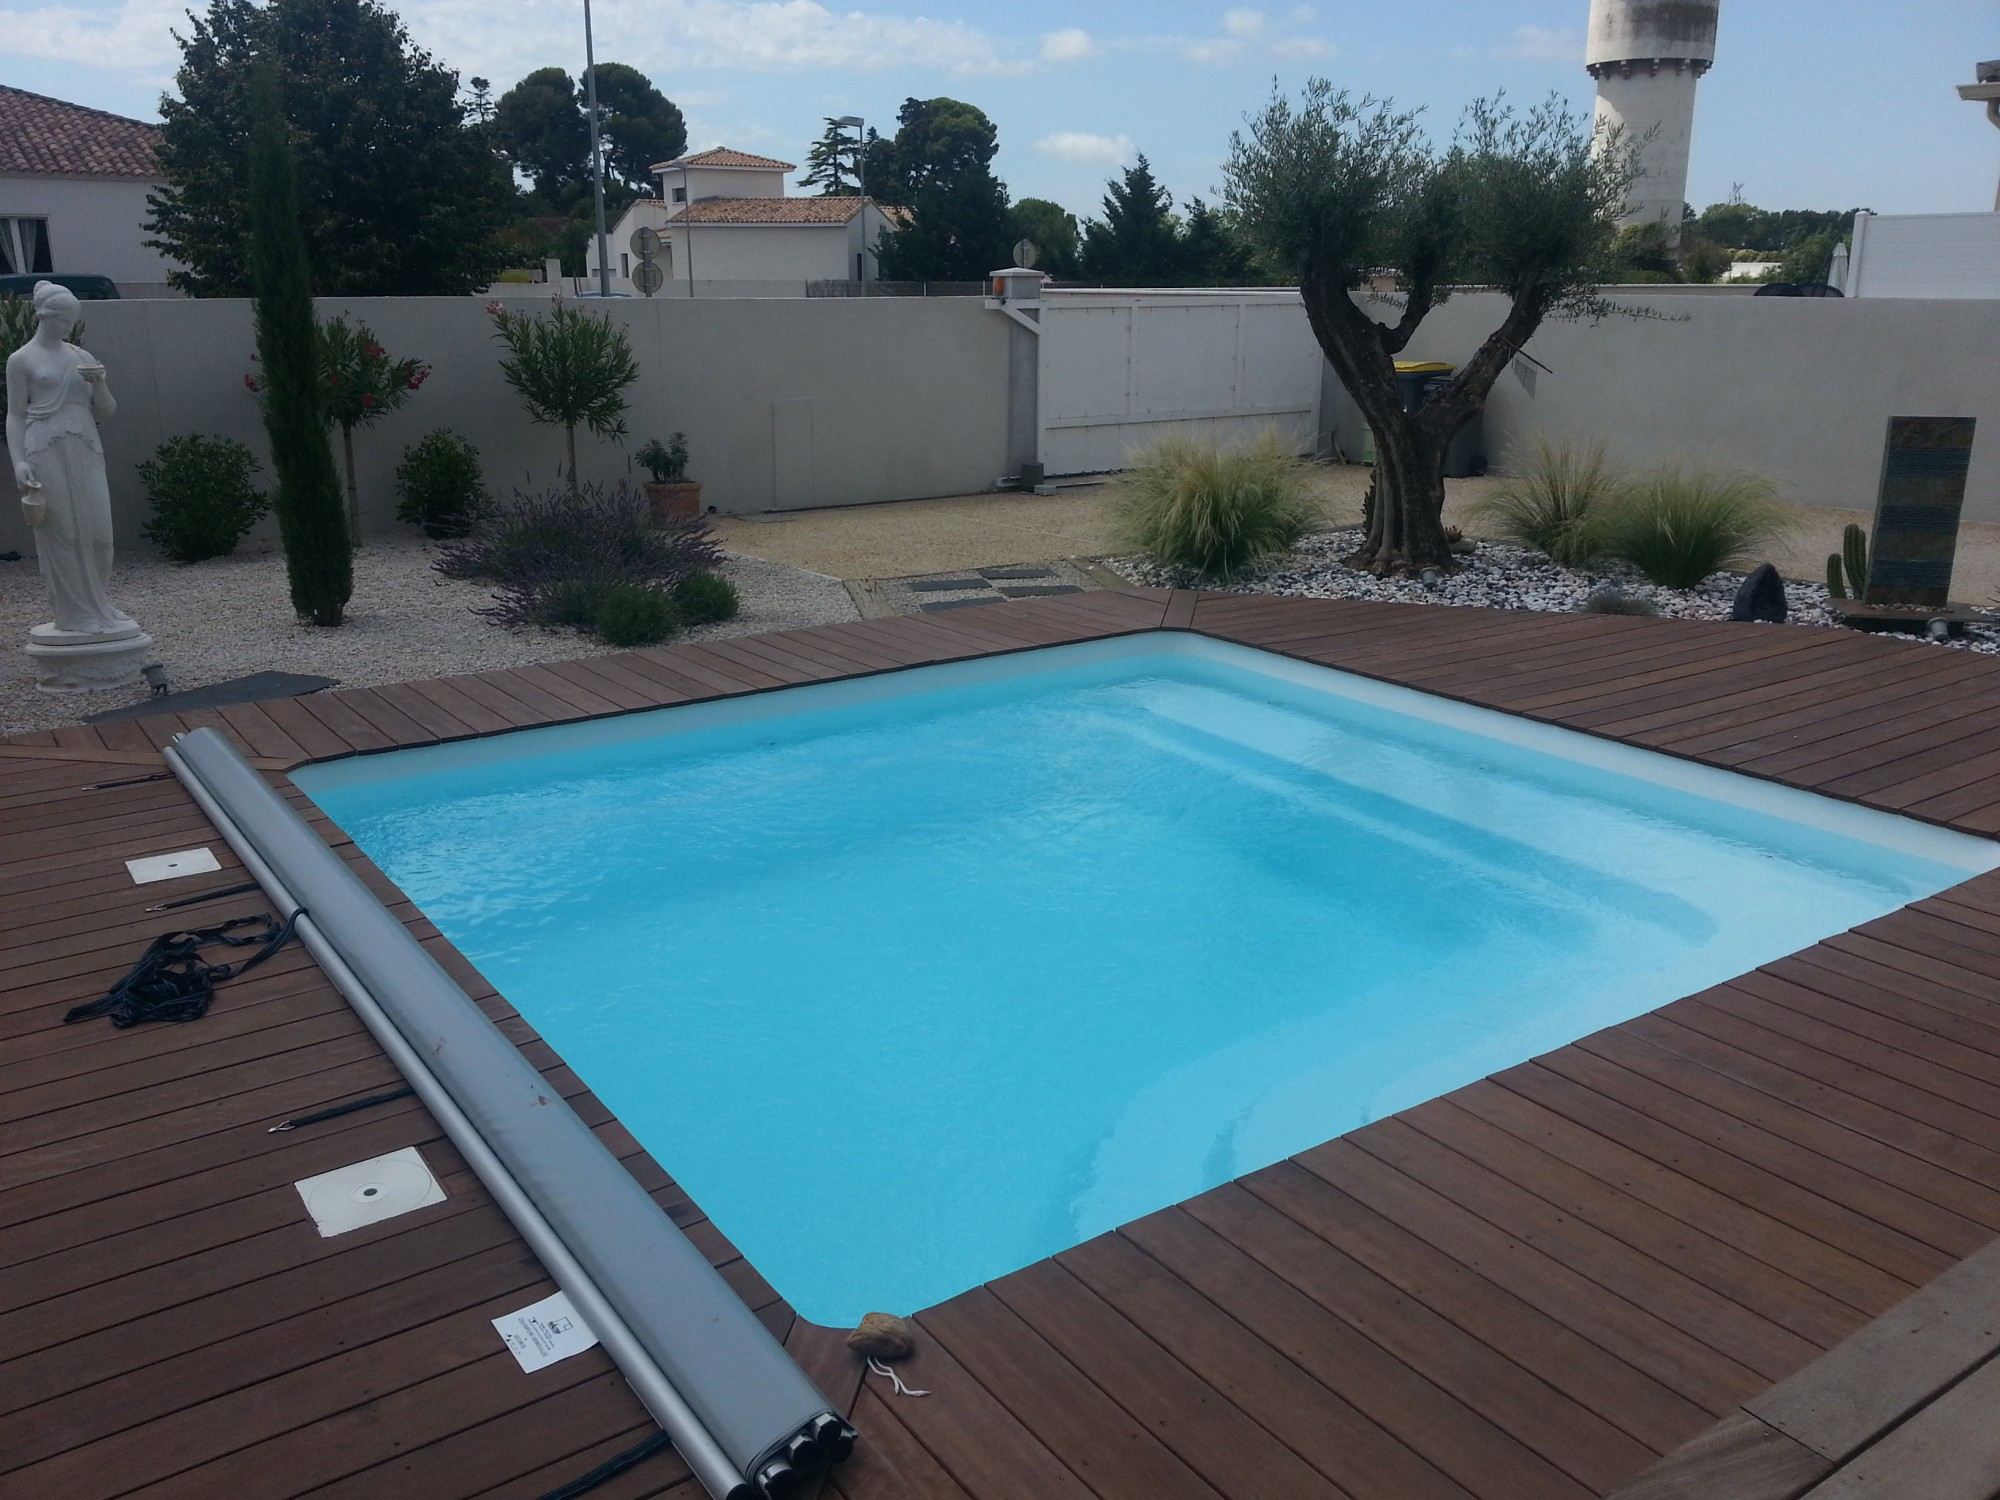 Tarif piscine coque desjoyaux tarif piscine coque for Piscine aquaboulevard tarif